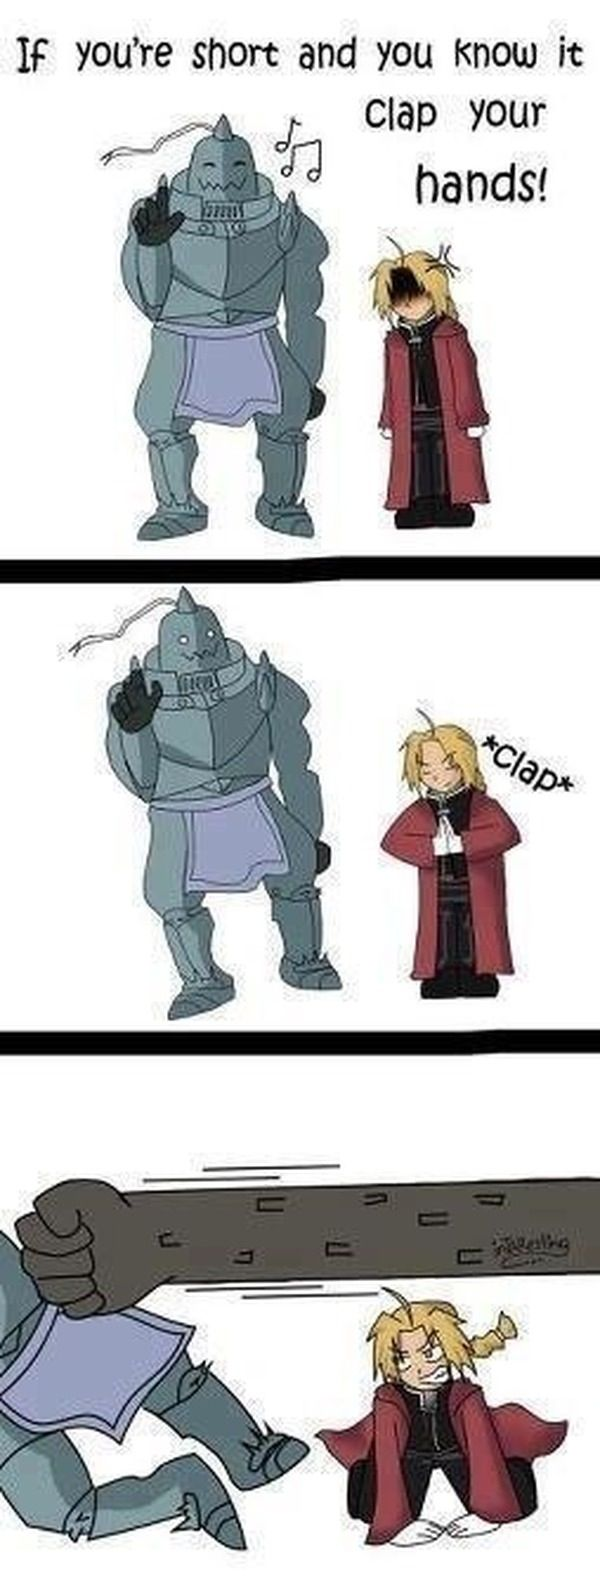 Fullmetal Alchemist fan art (that's pretty cute and funny XD ) #anime #manga